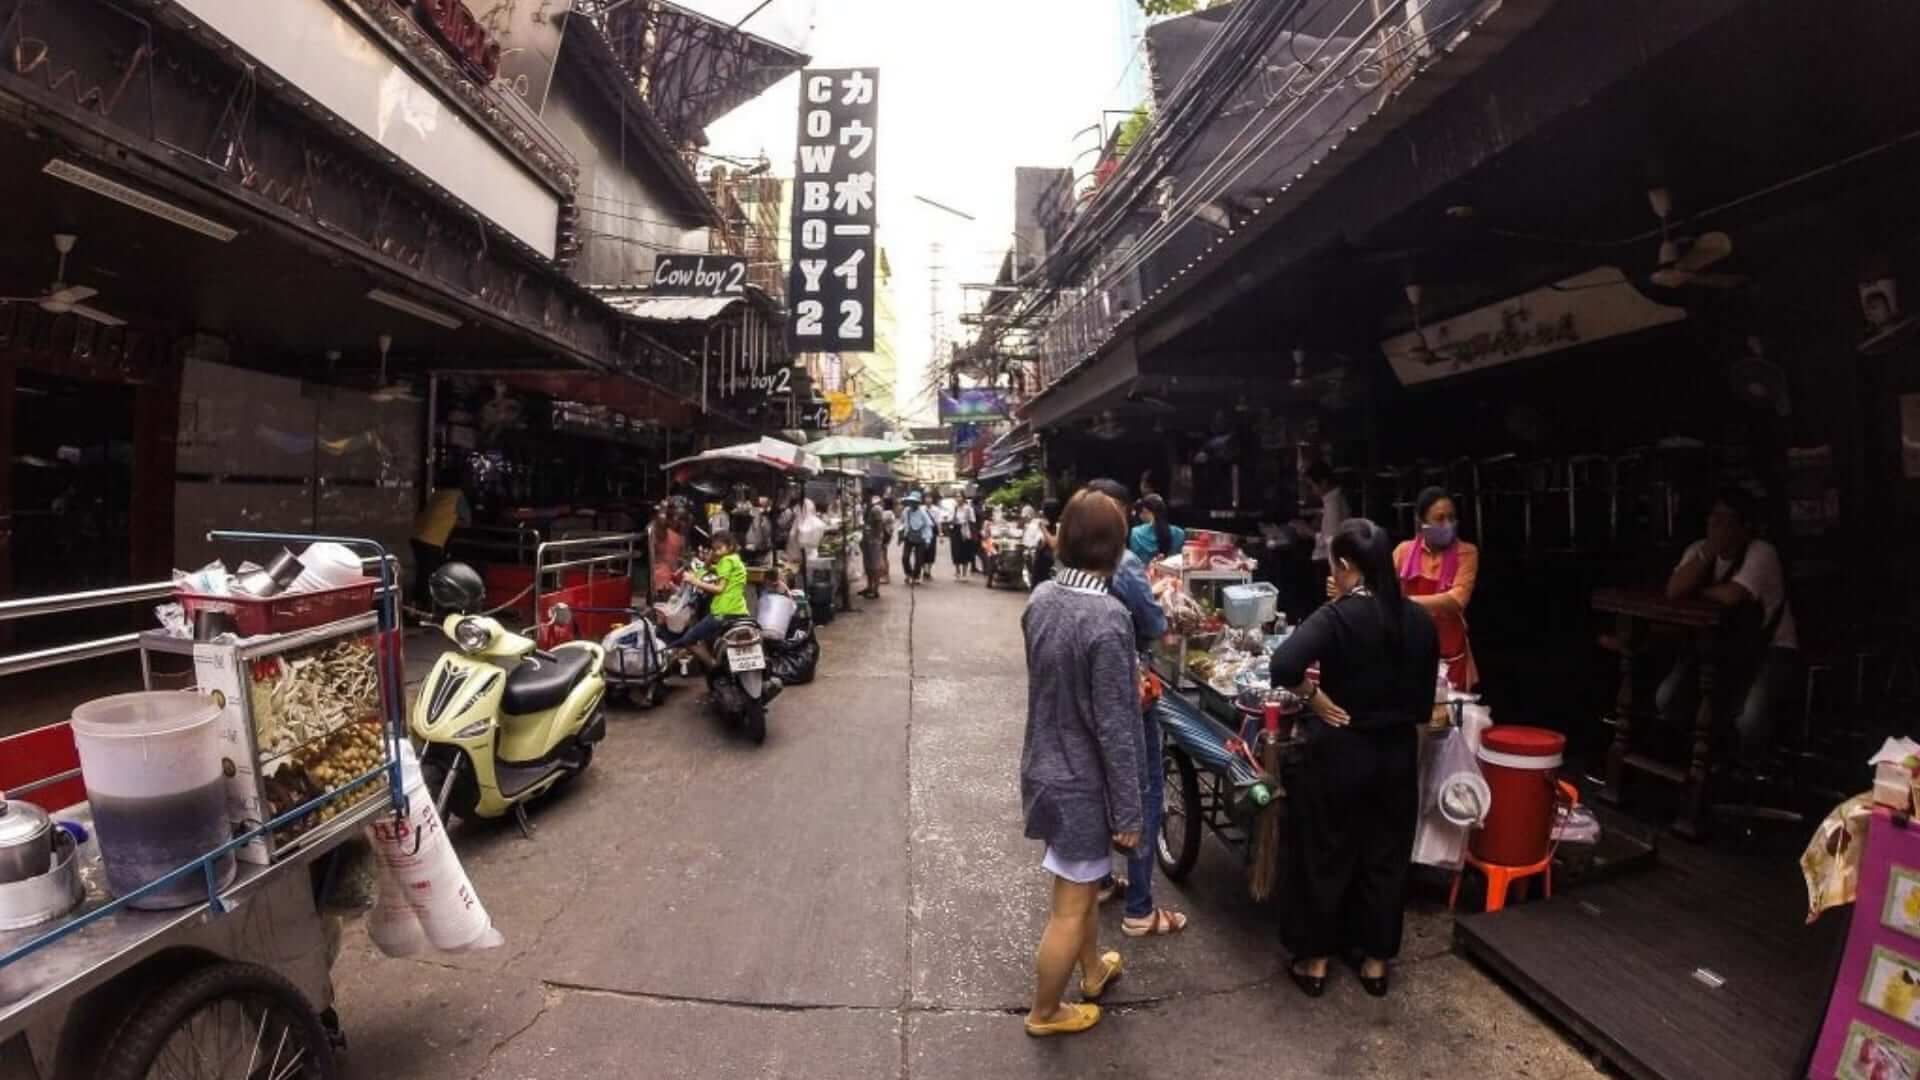 People are standing next to carts waiting for food in a street in Bangkok.